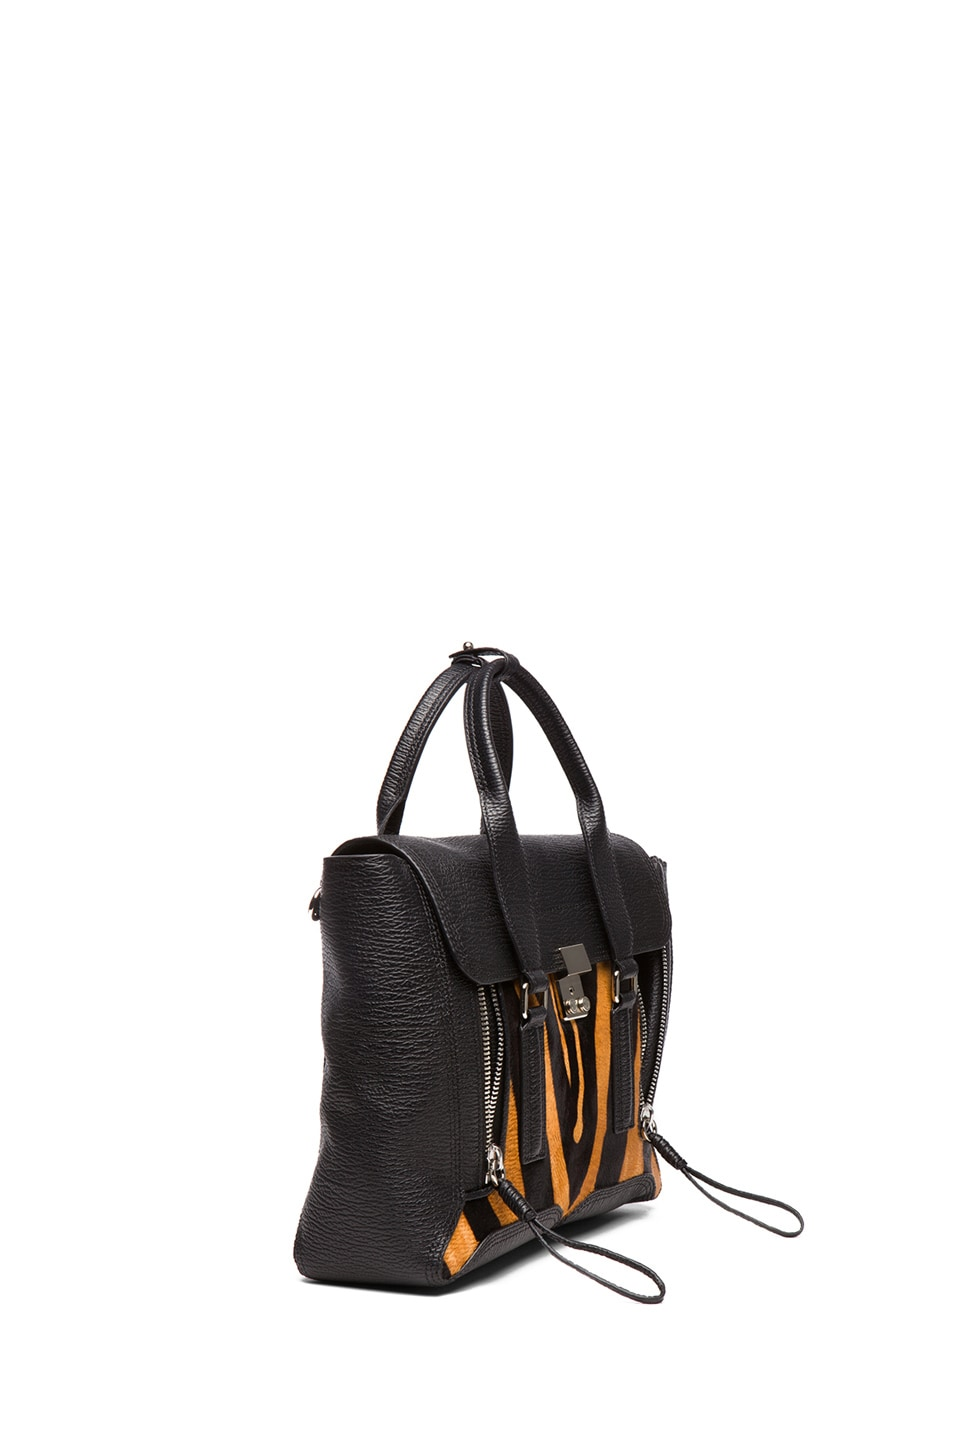 Image 3 of 3.1 phillip lim Medium Pashli Trapeze in Natural & Black